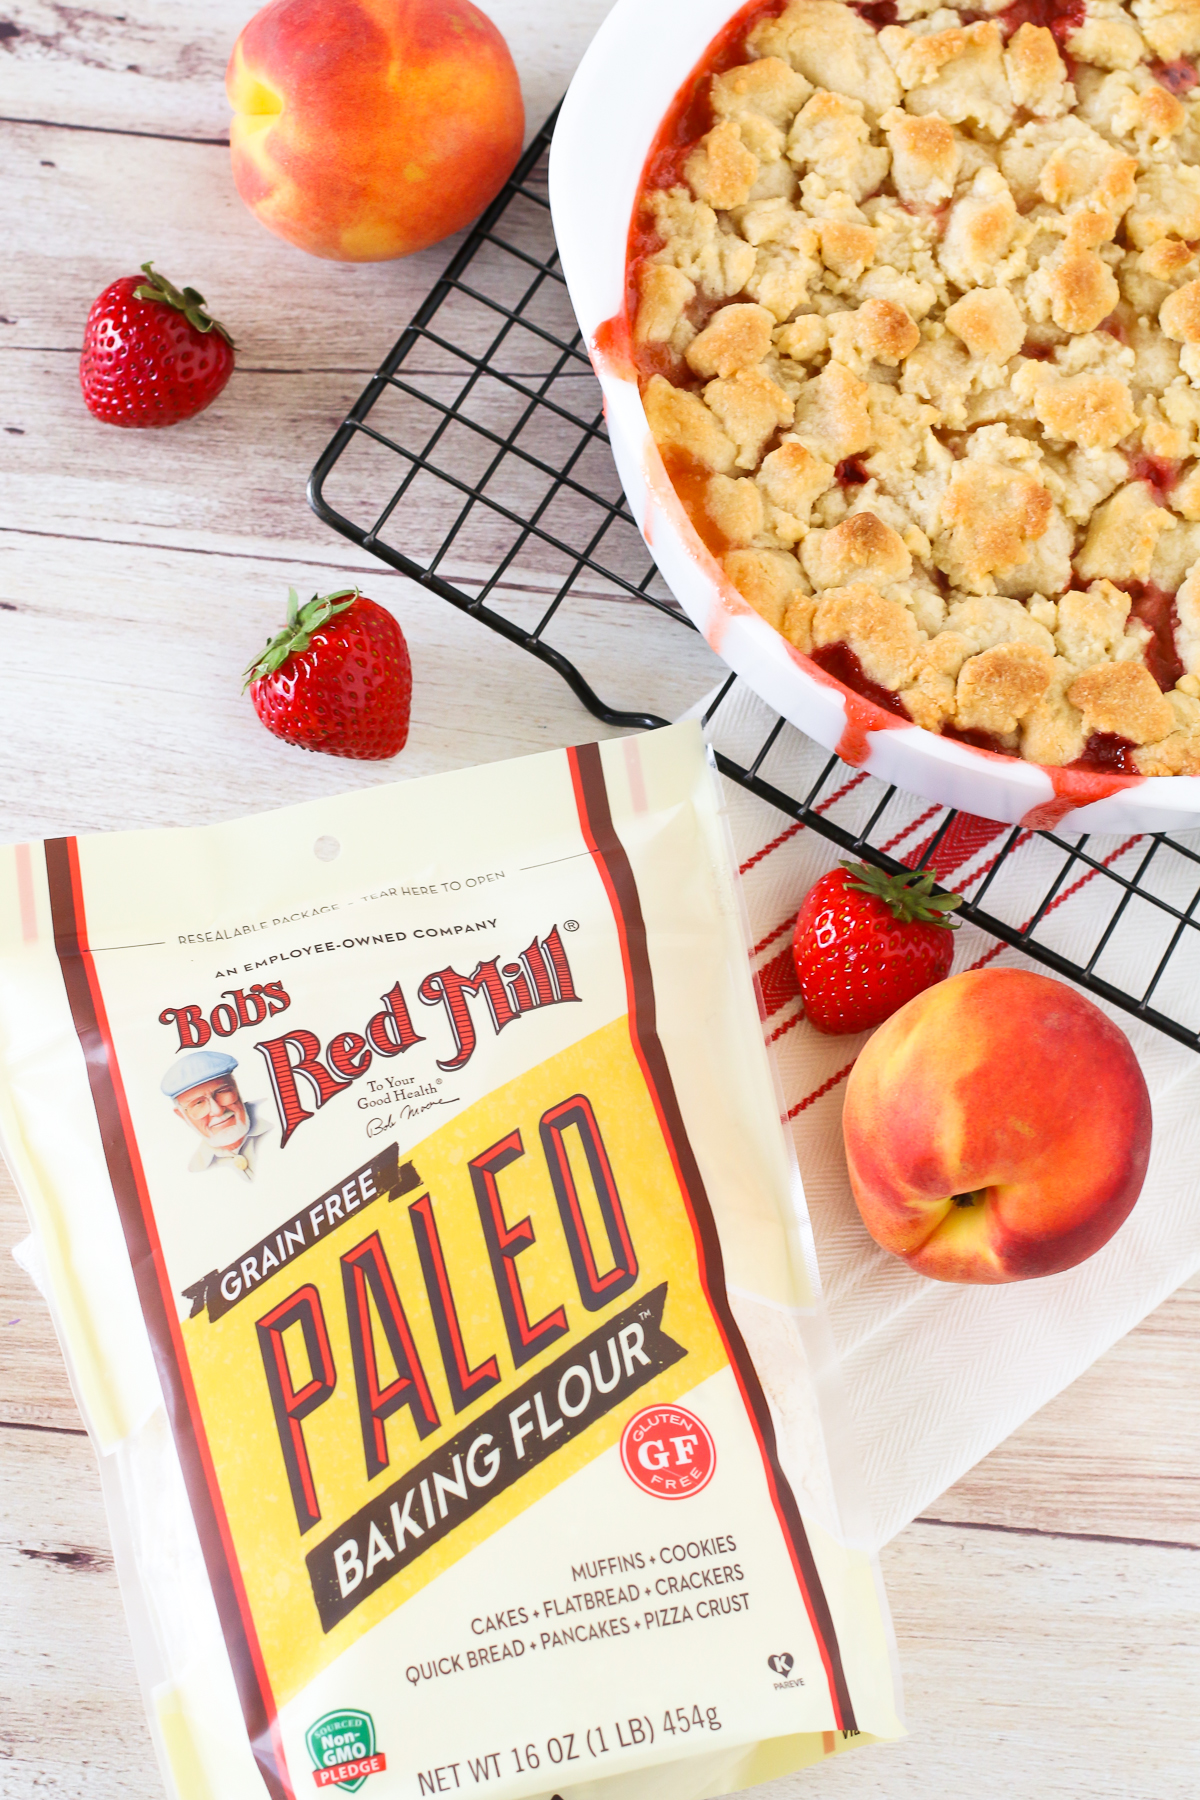 Grain Free Vegan Strawberry Peach Crisp. Golden grain free crisp topping, made with Bob's Red Mill Paleo Baking Flour. The combo of sweet, juicy strawberries and peaches makes this a summertime must!